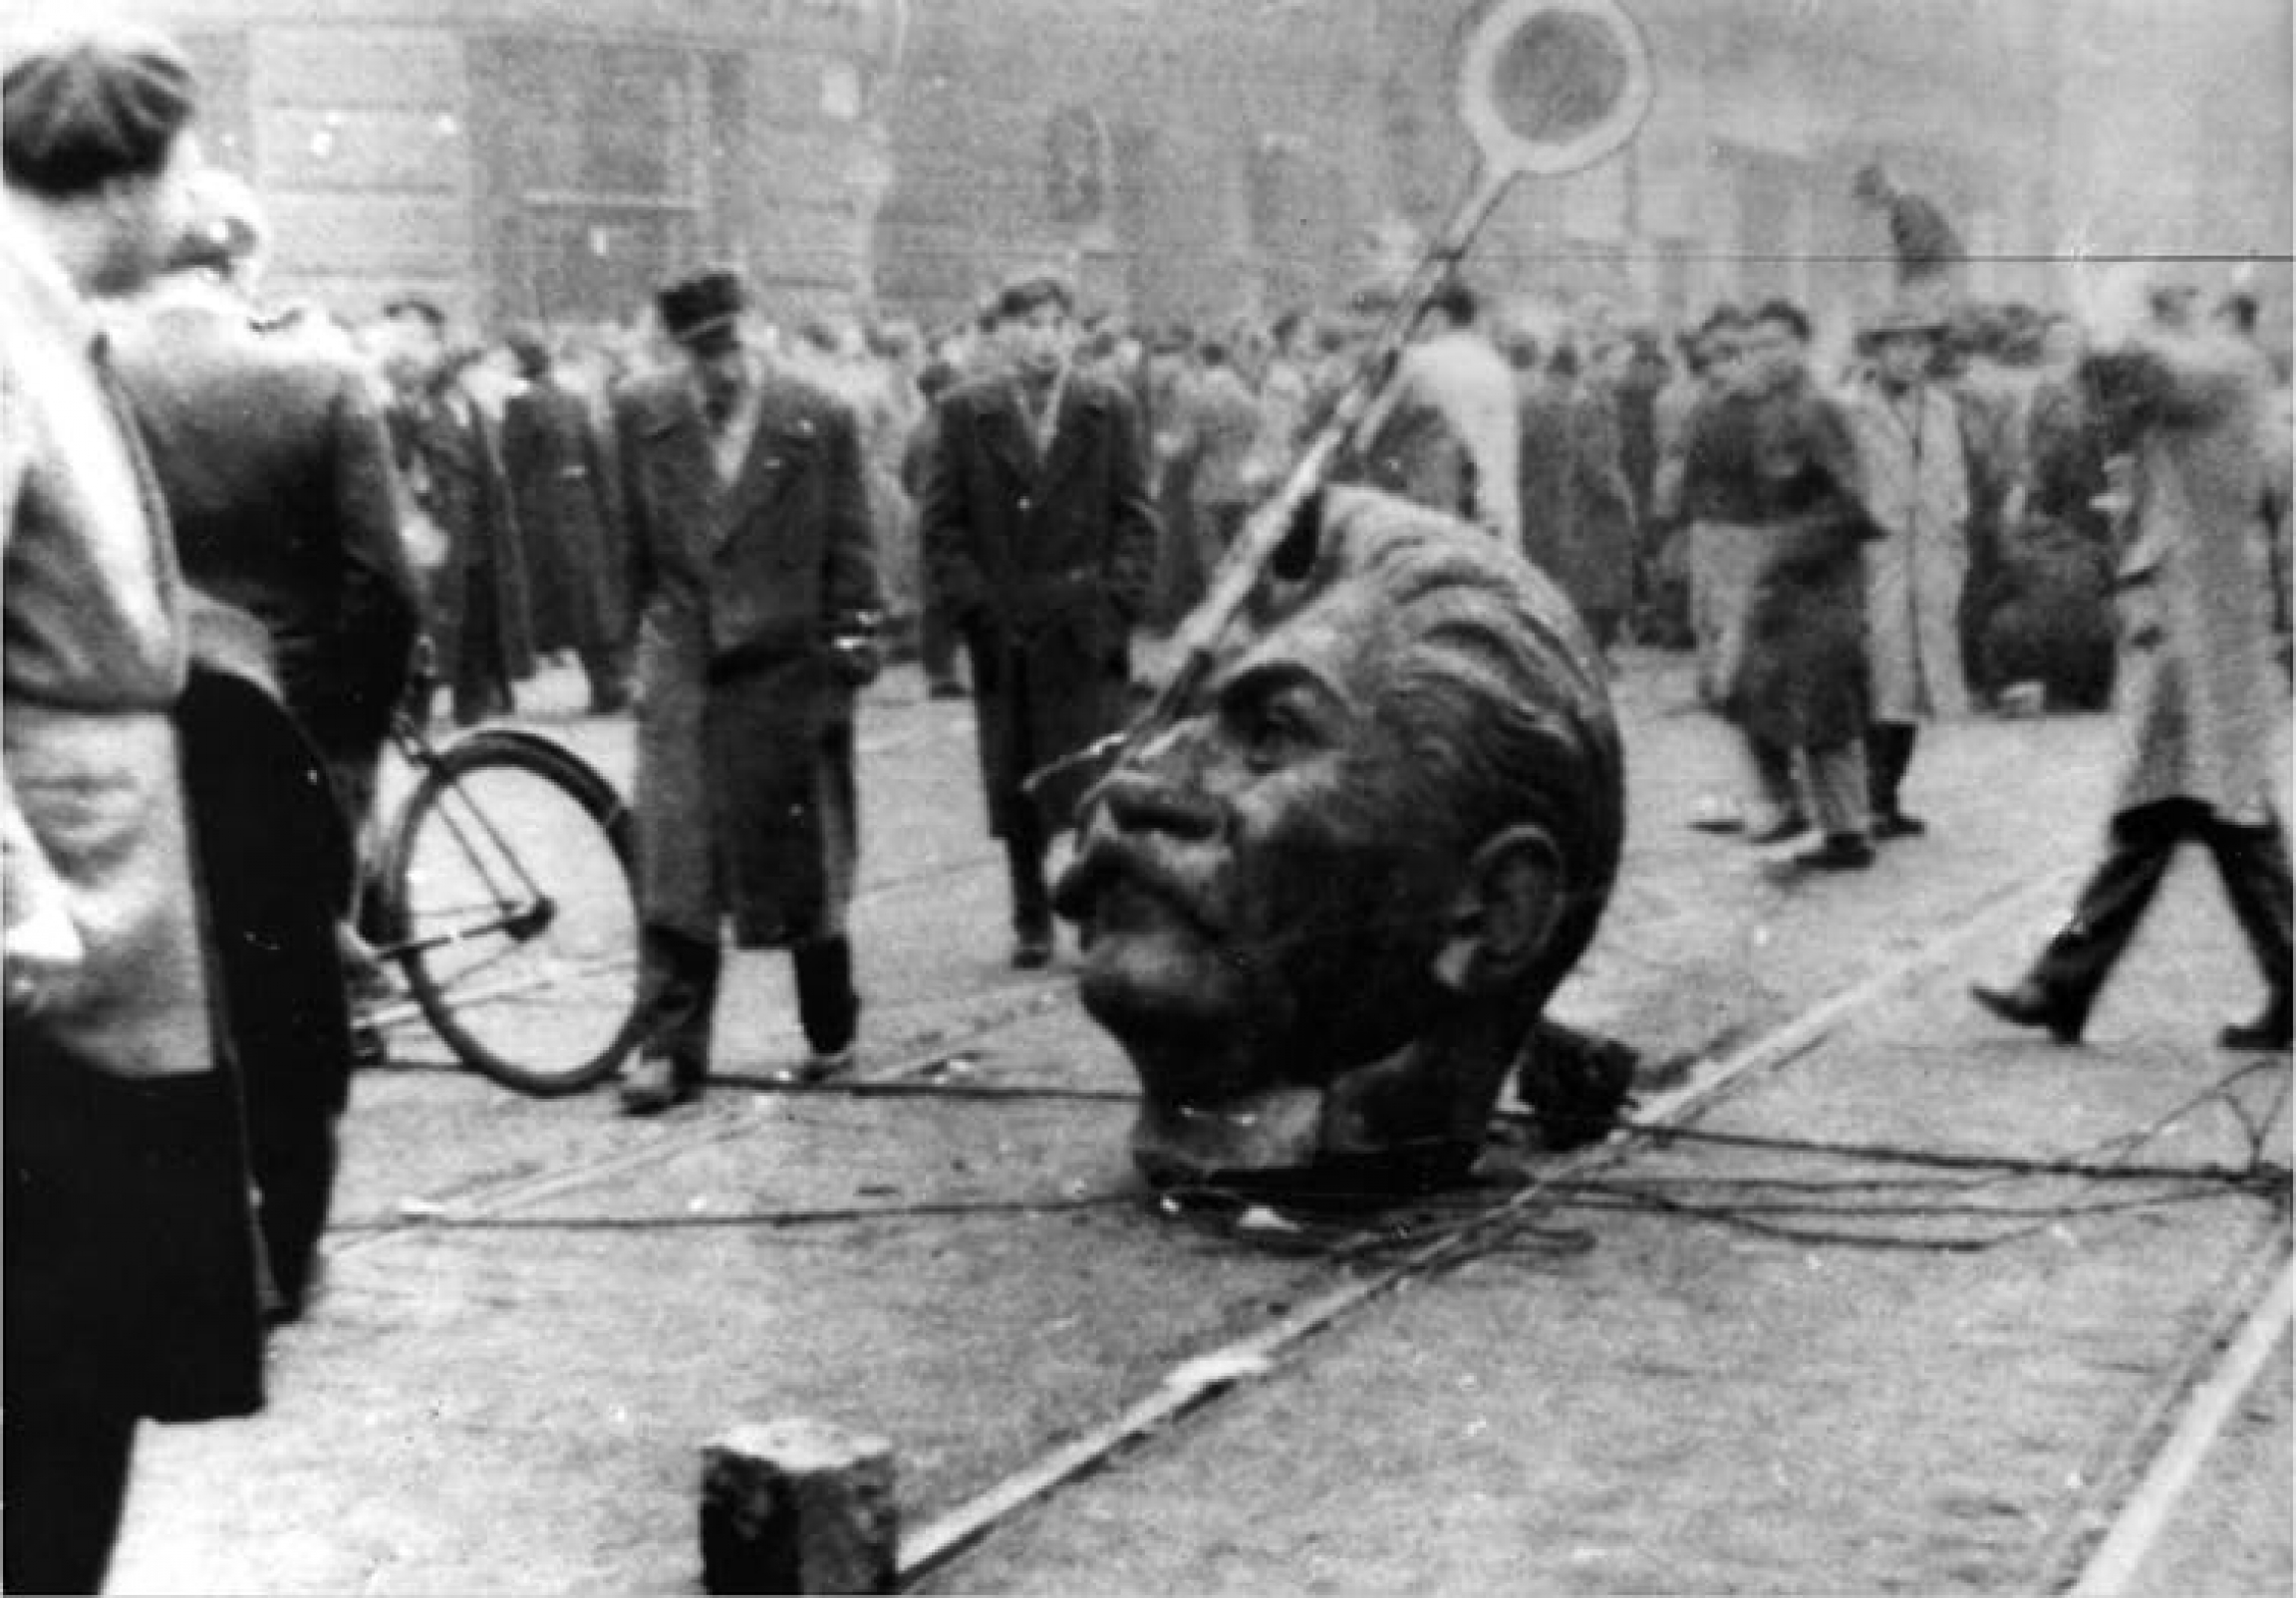 A statue of Stalin's head is on the ground during a revolution in Hungary.